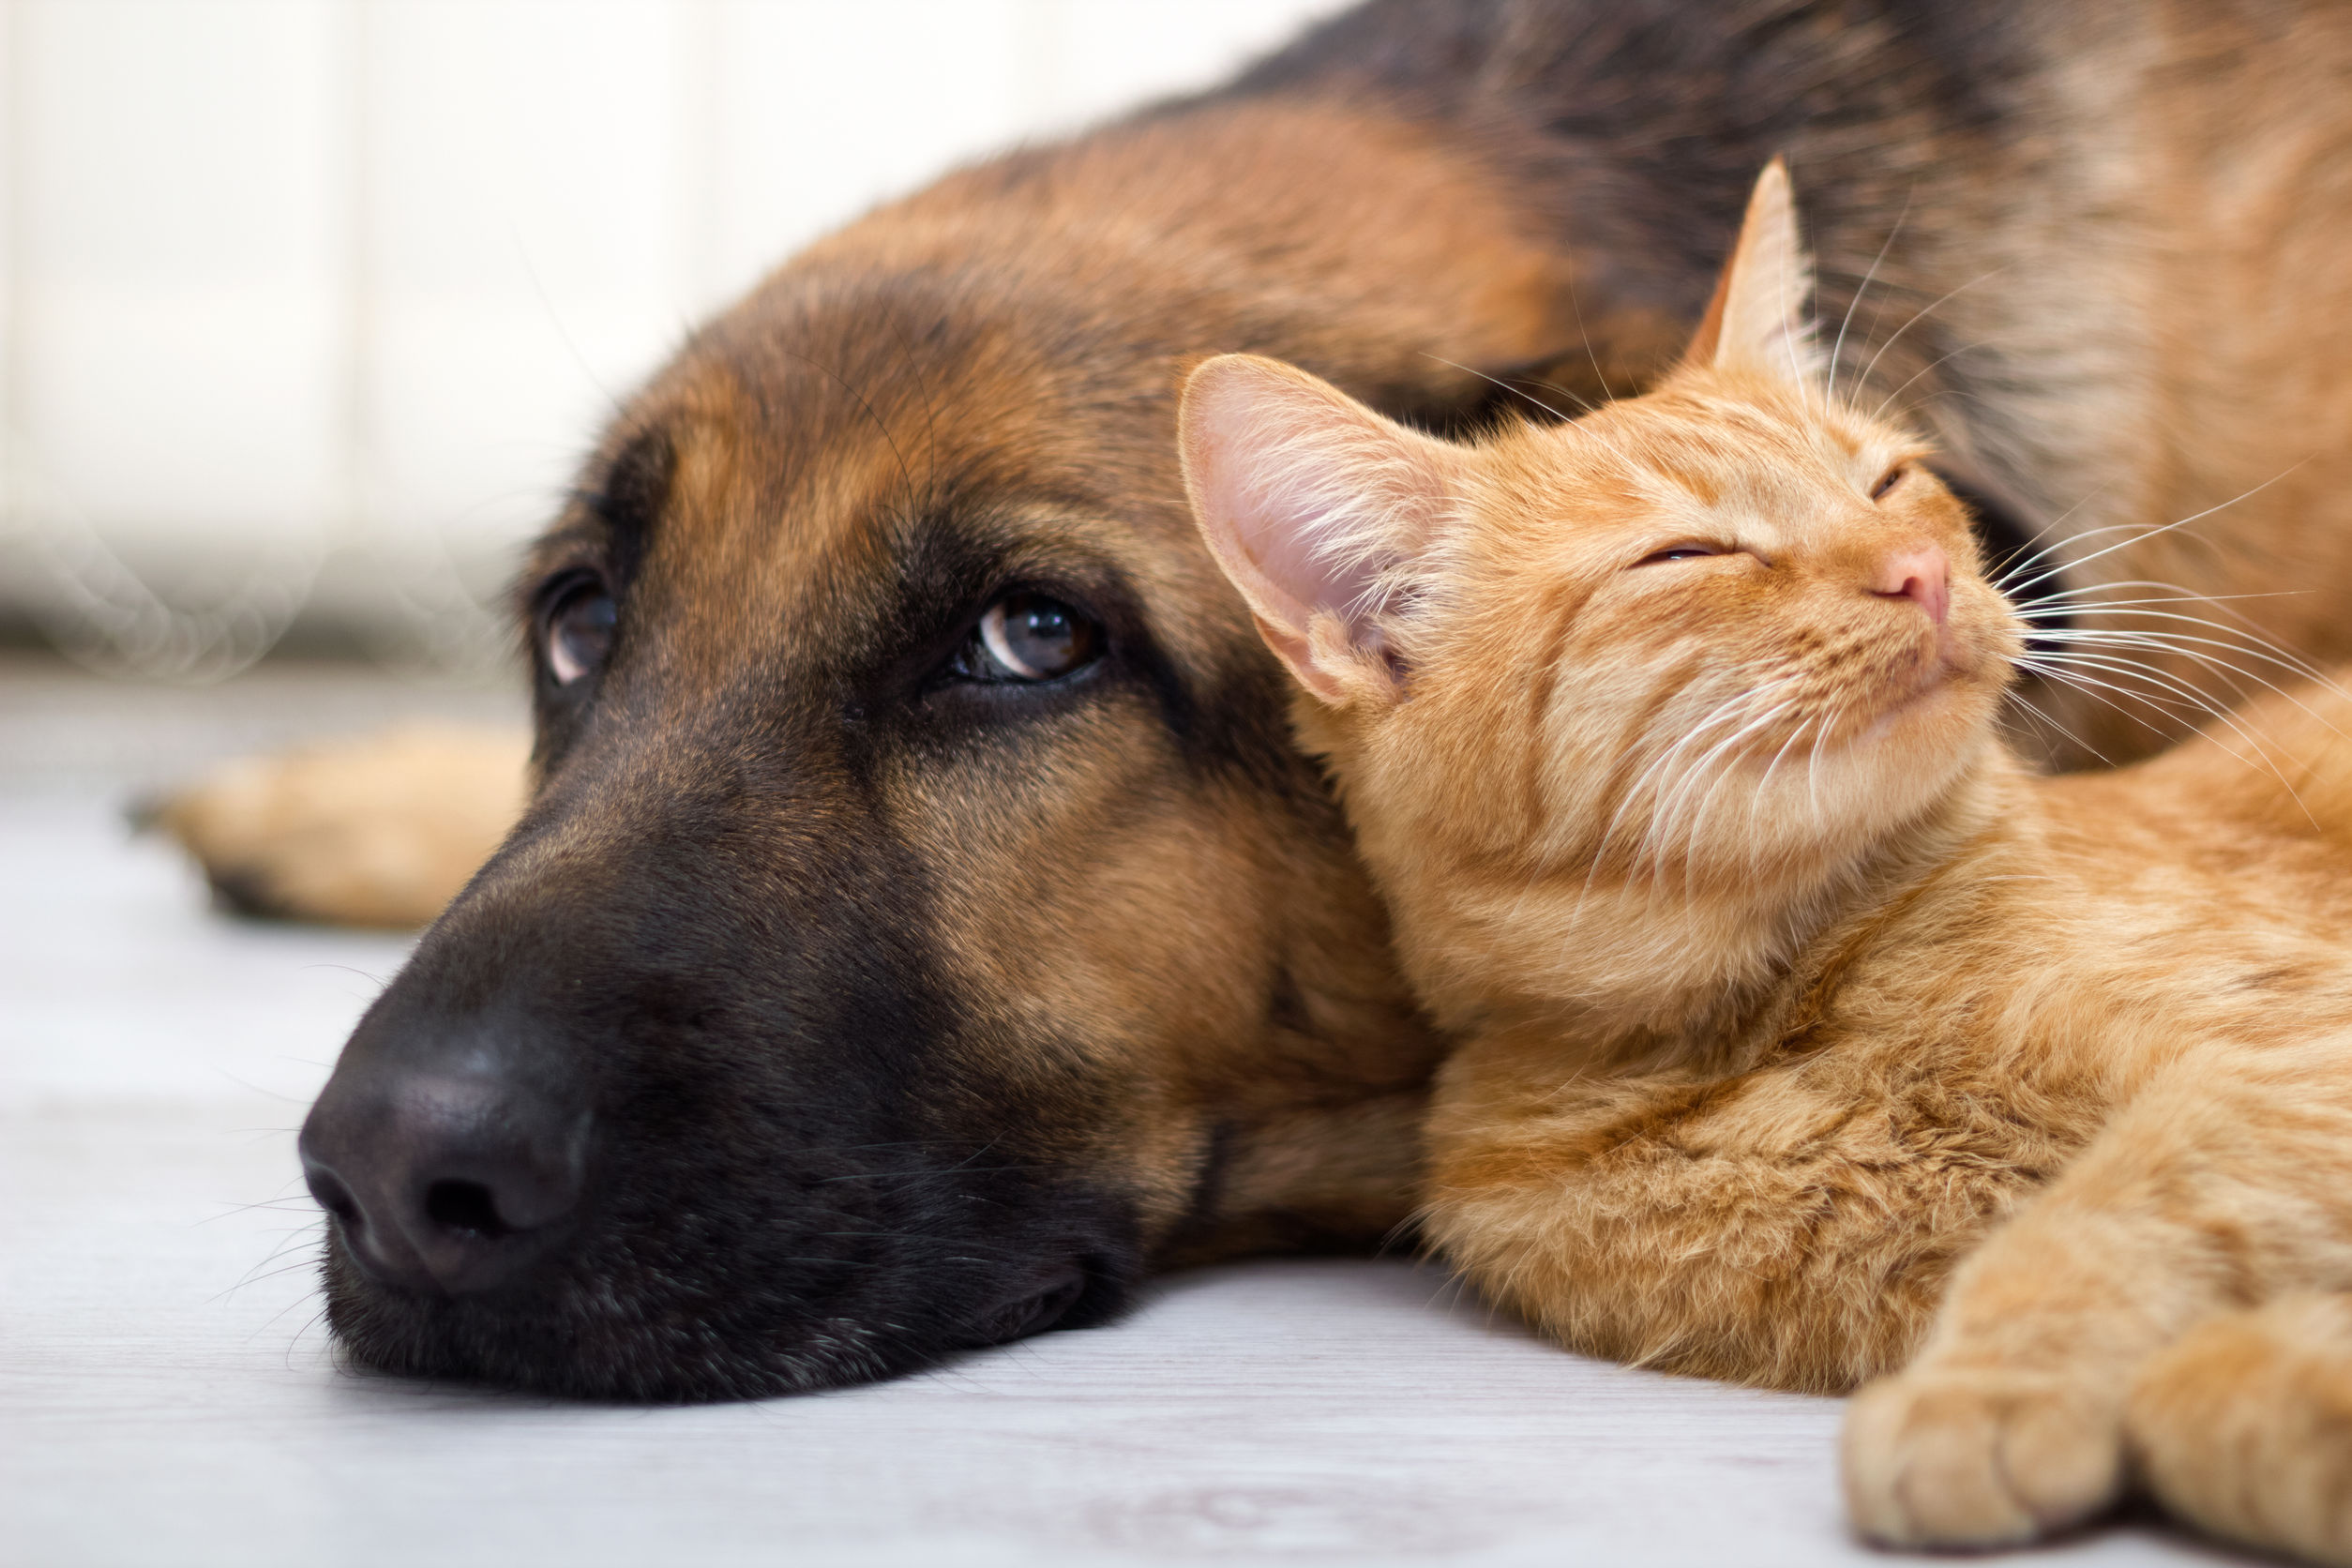 australia cat and dog 123rf